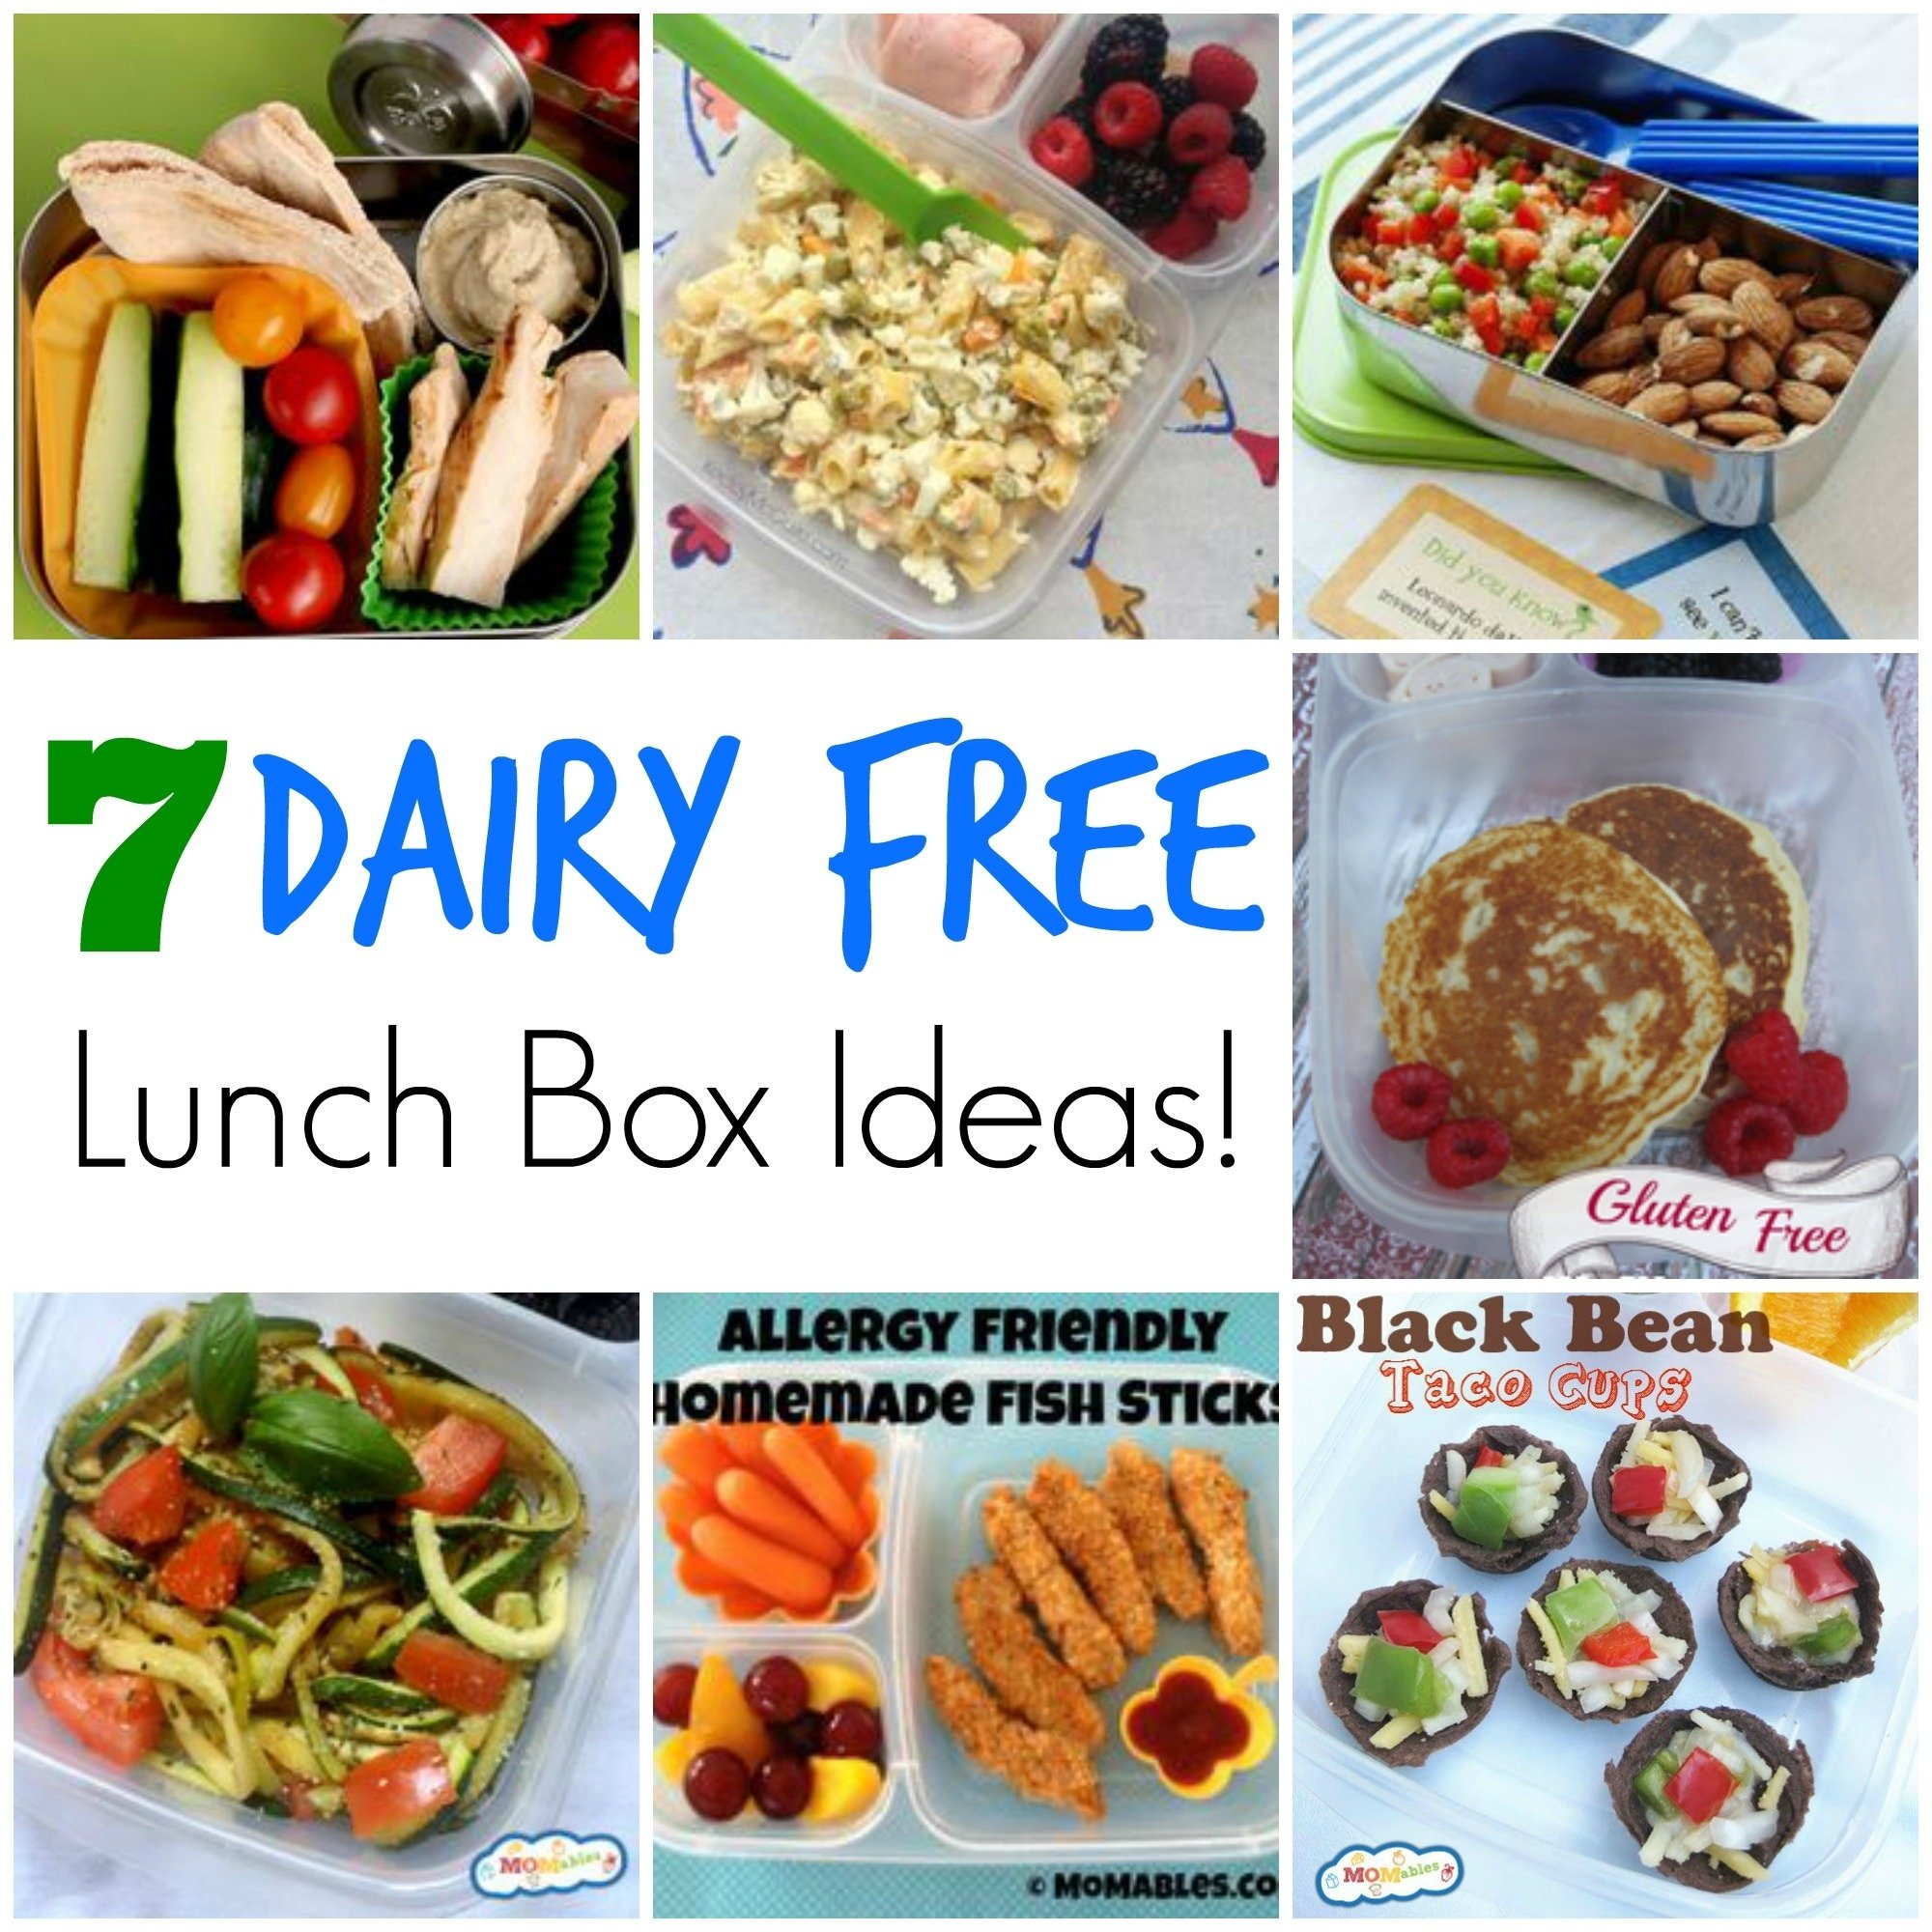 10 Pretty Healthy Lunch Ideas For Picky Eaters 7 dairy free school lunch ideas 14 2021